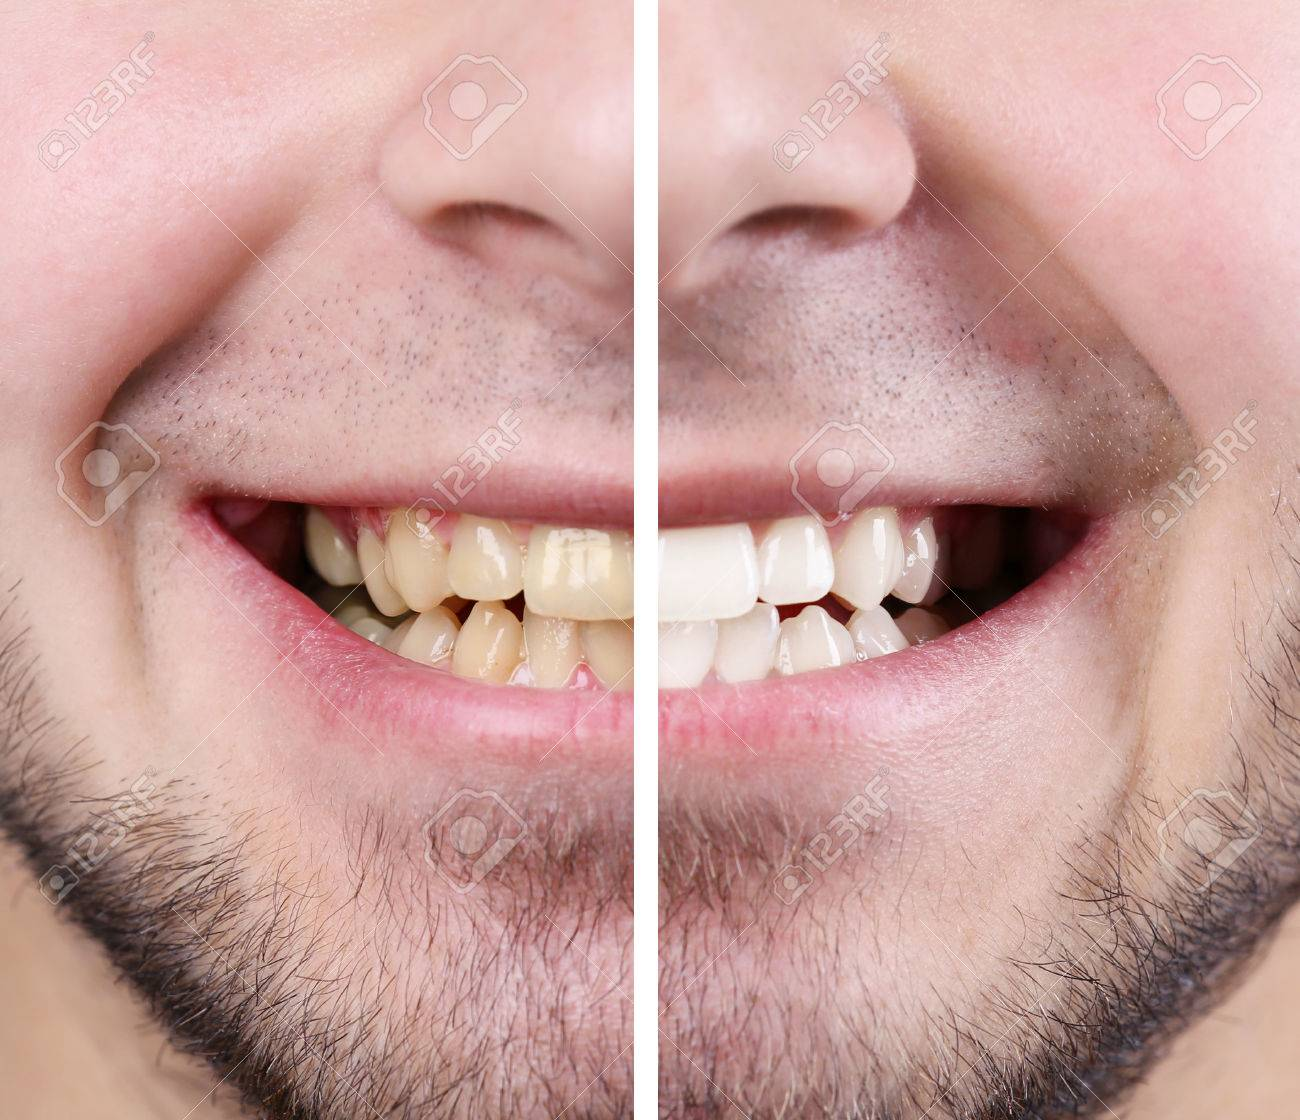 Smiling man: before and after concept - 52132562